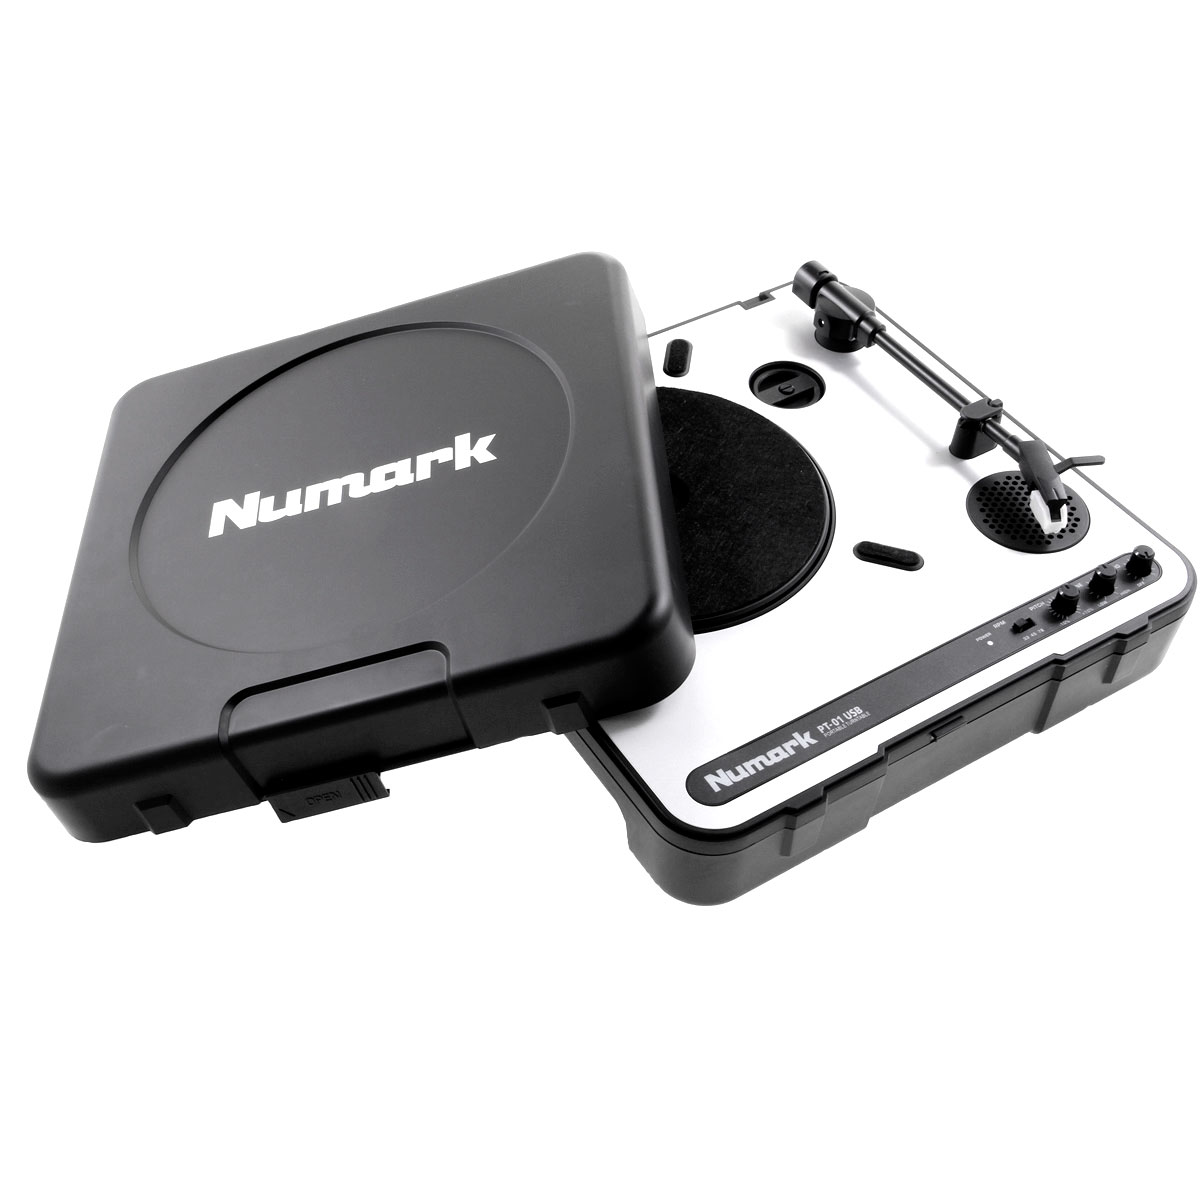 PT01USB - Toca Discos / Pick-up c/ USB PT 01 USB - Numark